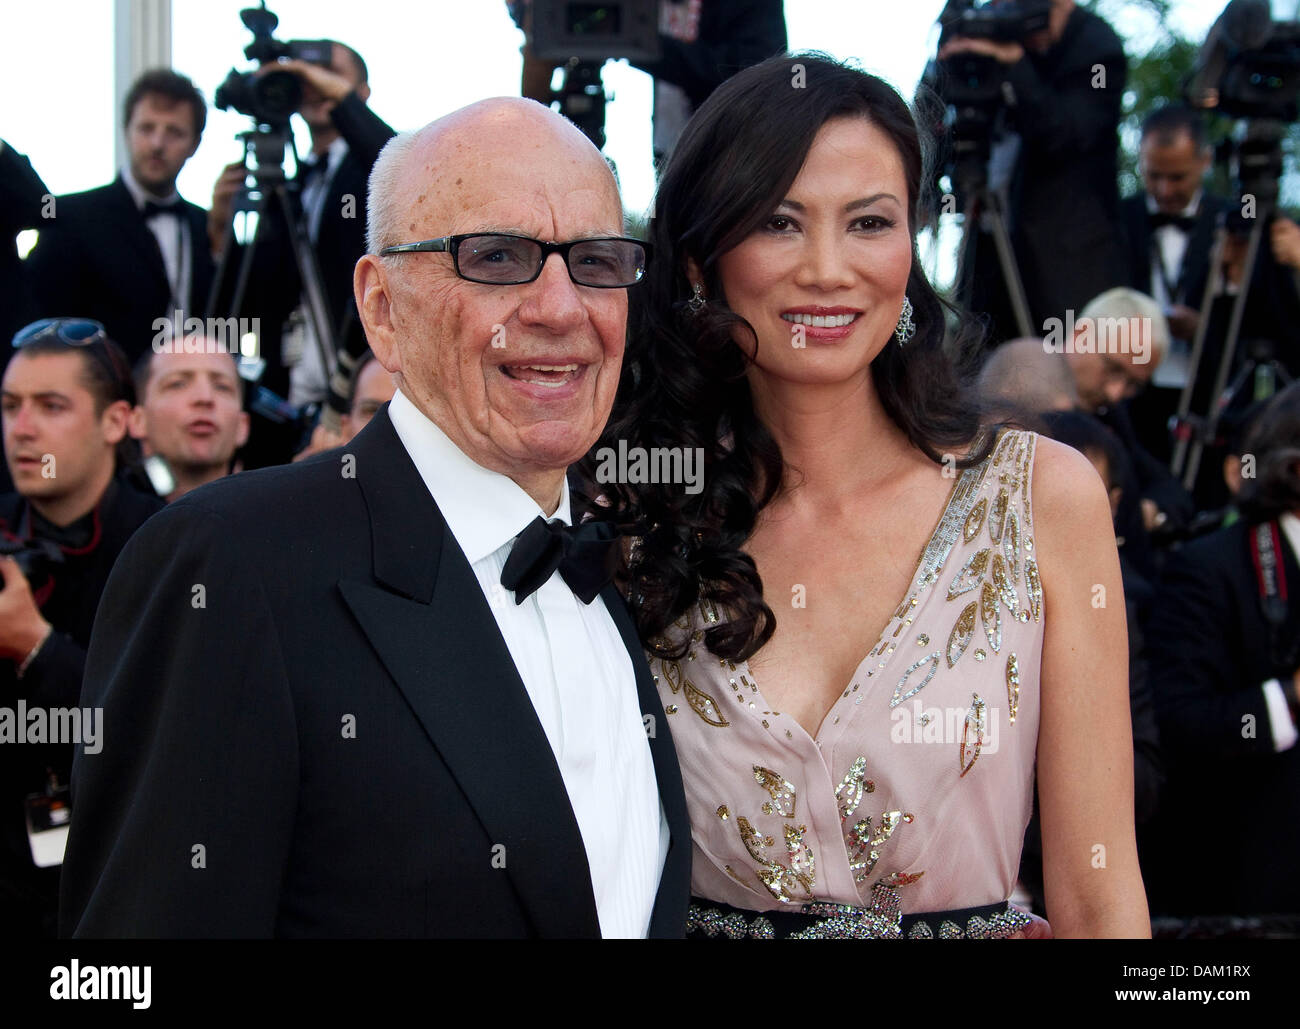 Media mogul Rupert Murdoch and his wife Wendi Deng Murdoch attend the premiere of 'The Tree Of Life' at - Stock Image